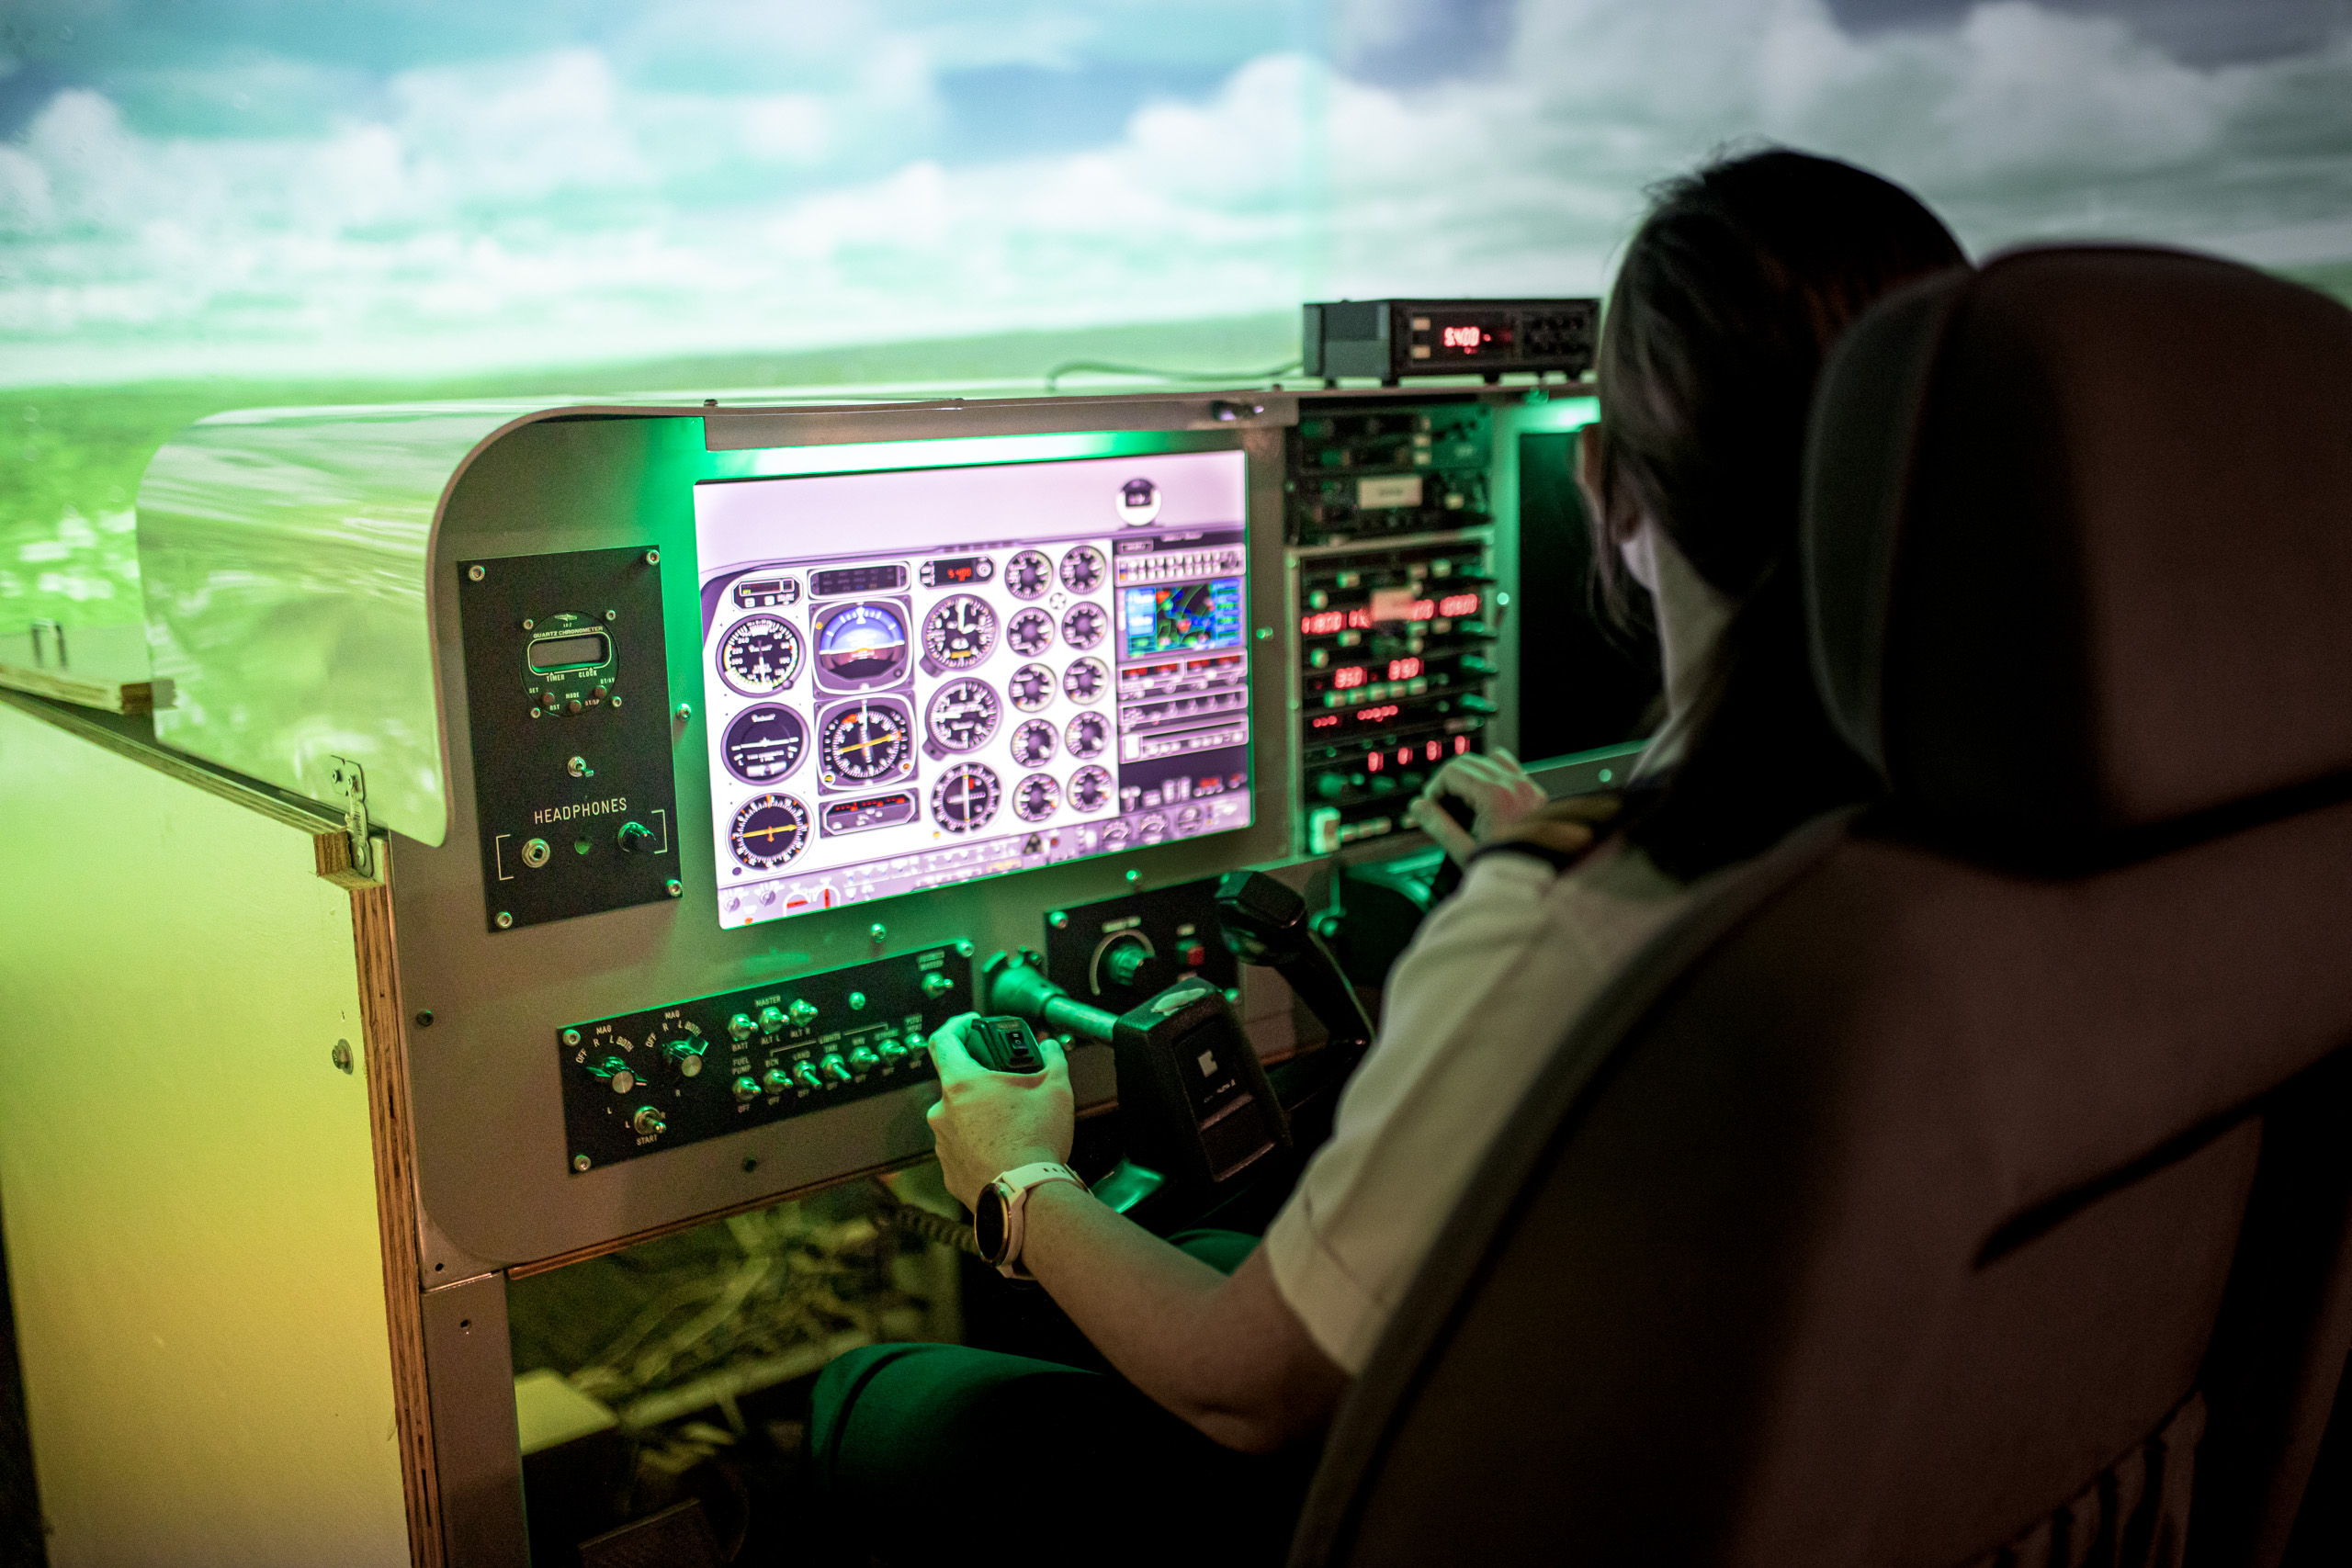 comprehensive training resource set, with an on-site flight simulator, extensive, modern fleet, and skilled, customer oriented flight instructors.